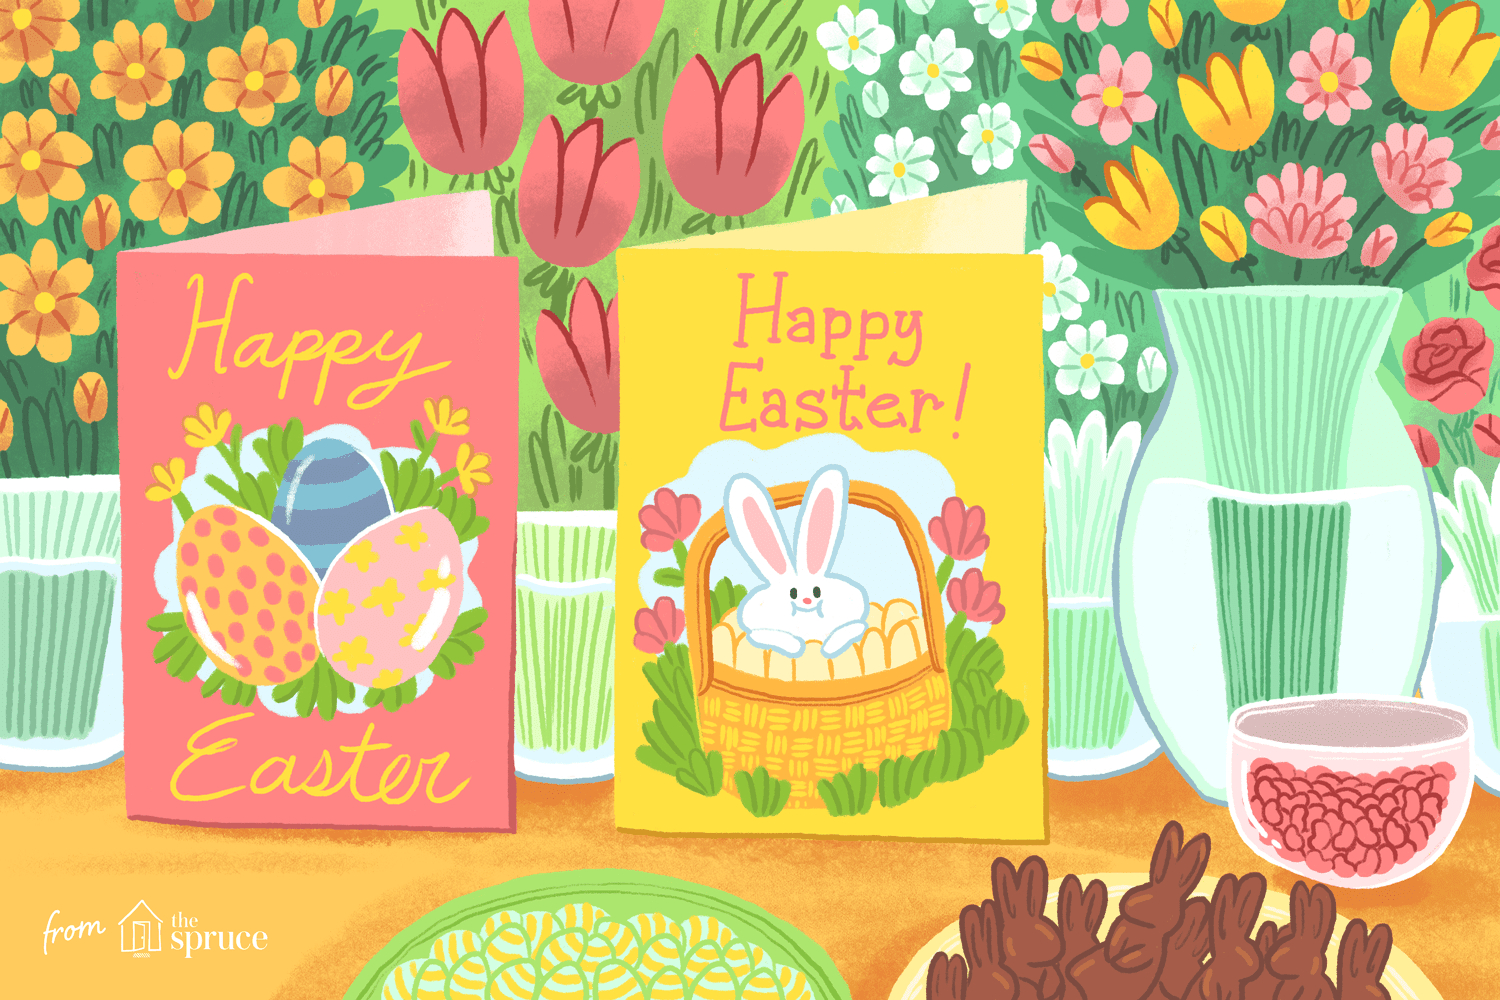 12 Free, Printable Easter Cards For Everyone You Know - Free Printable Easter Cards